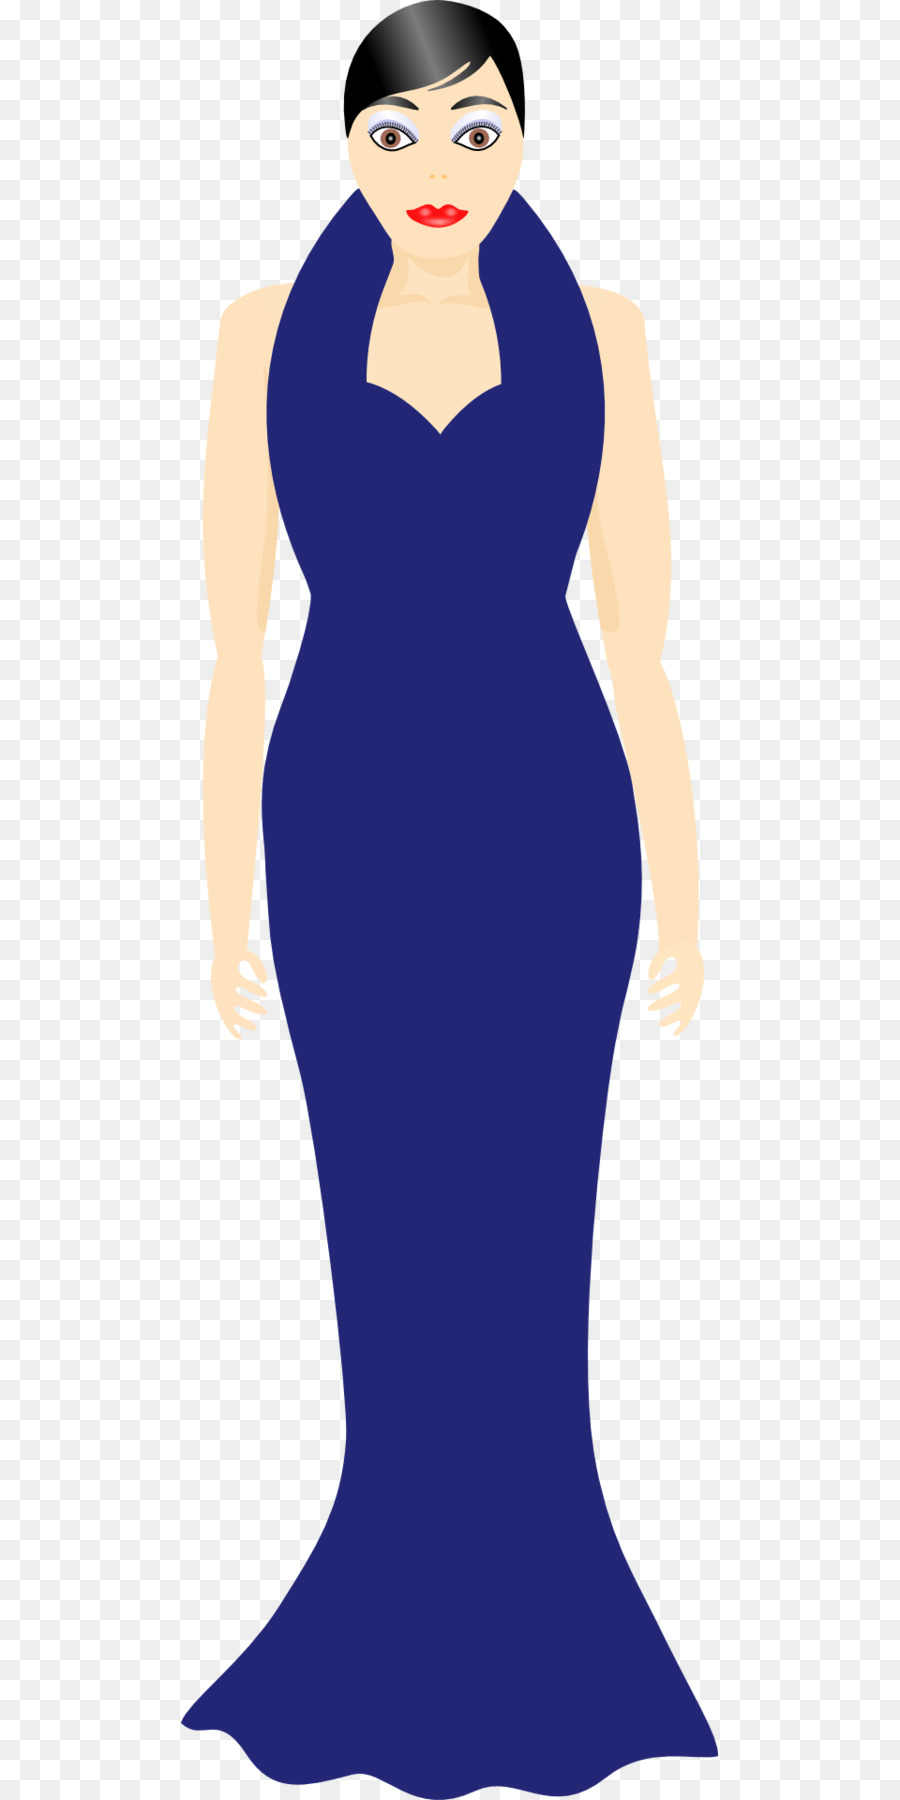 Dress Woman Gown Clothing Clip art - dress png download - 960*1920 ...